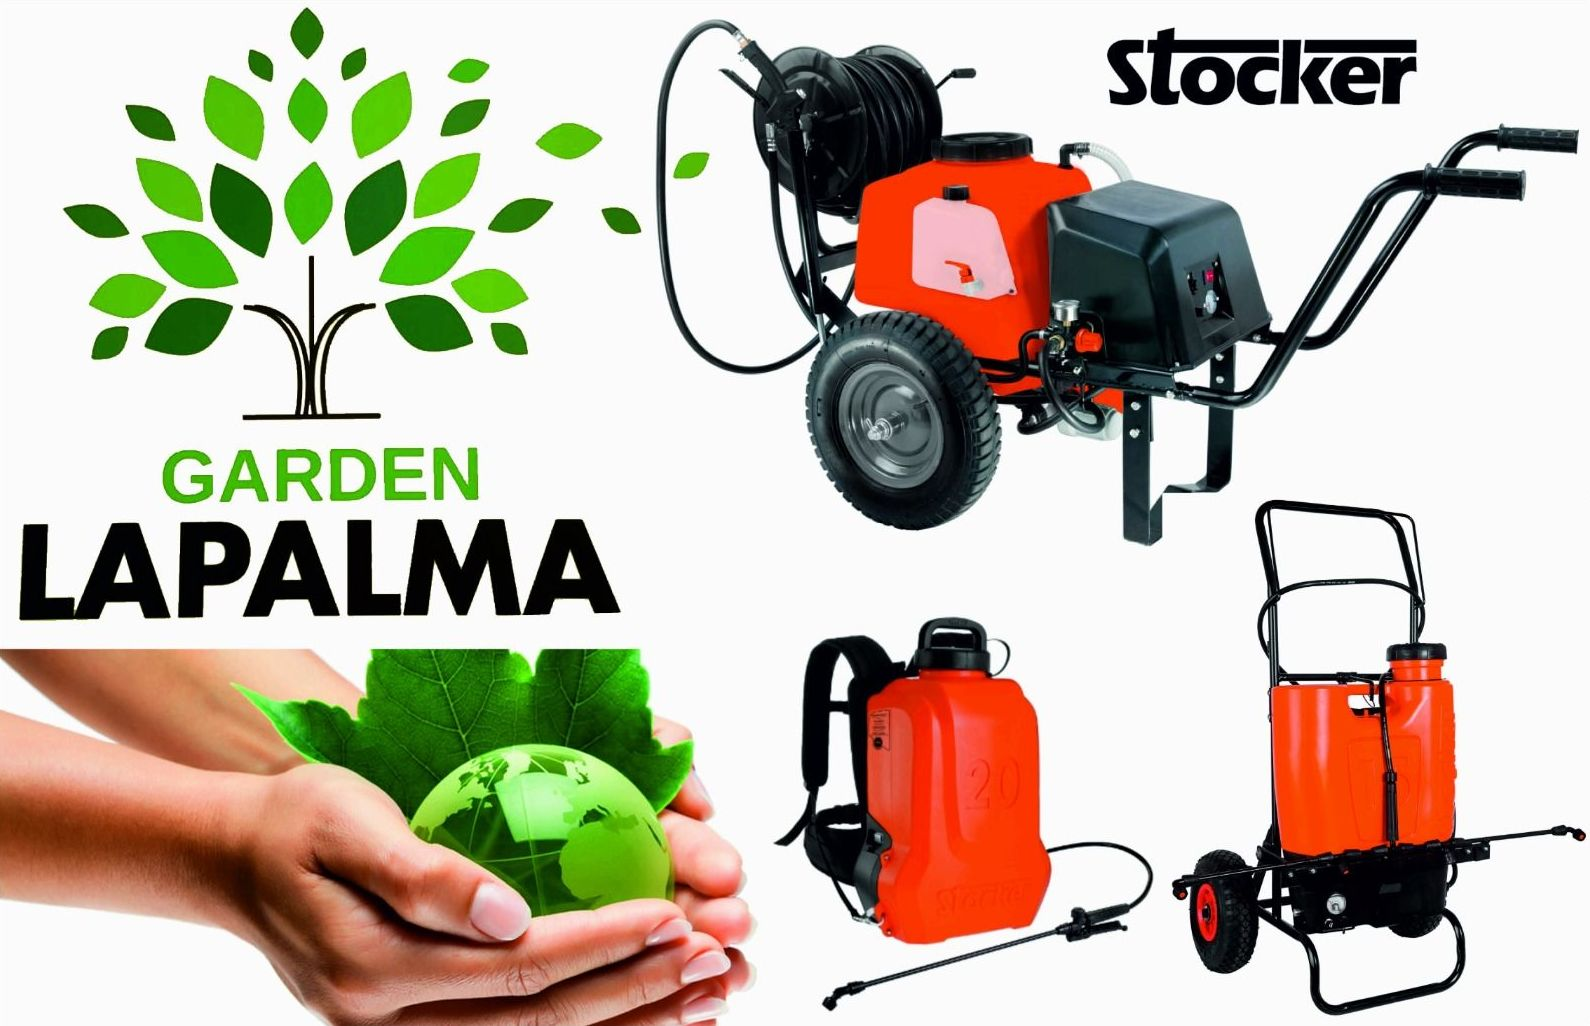 Productos Stocker: Productos de Garden La Palma